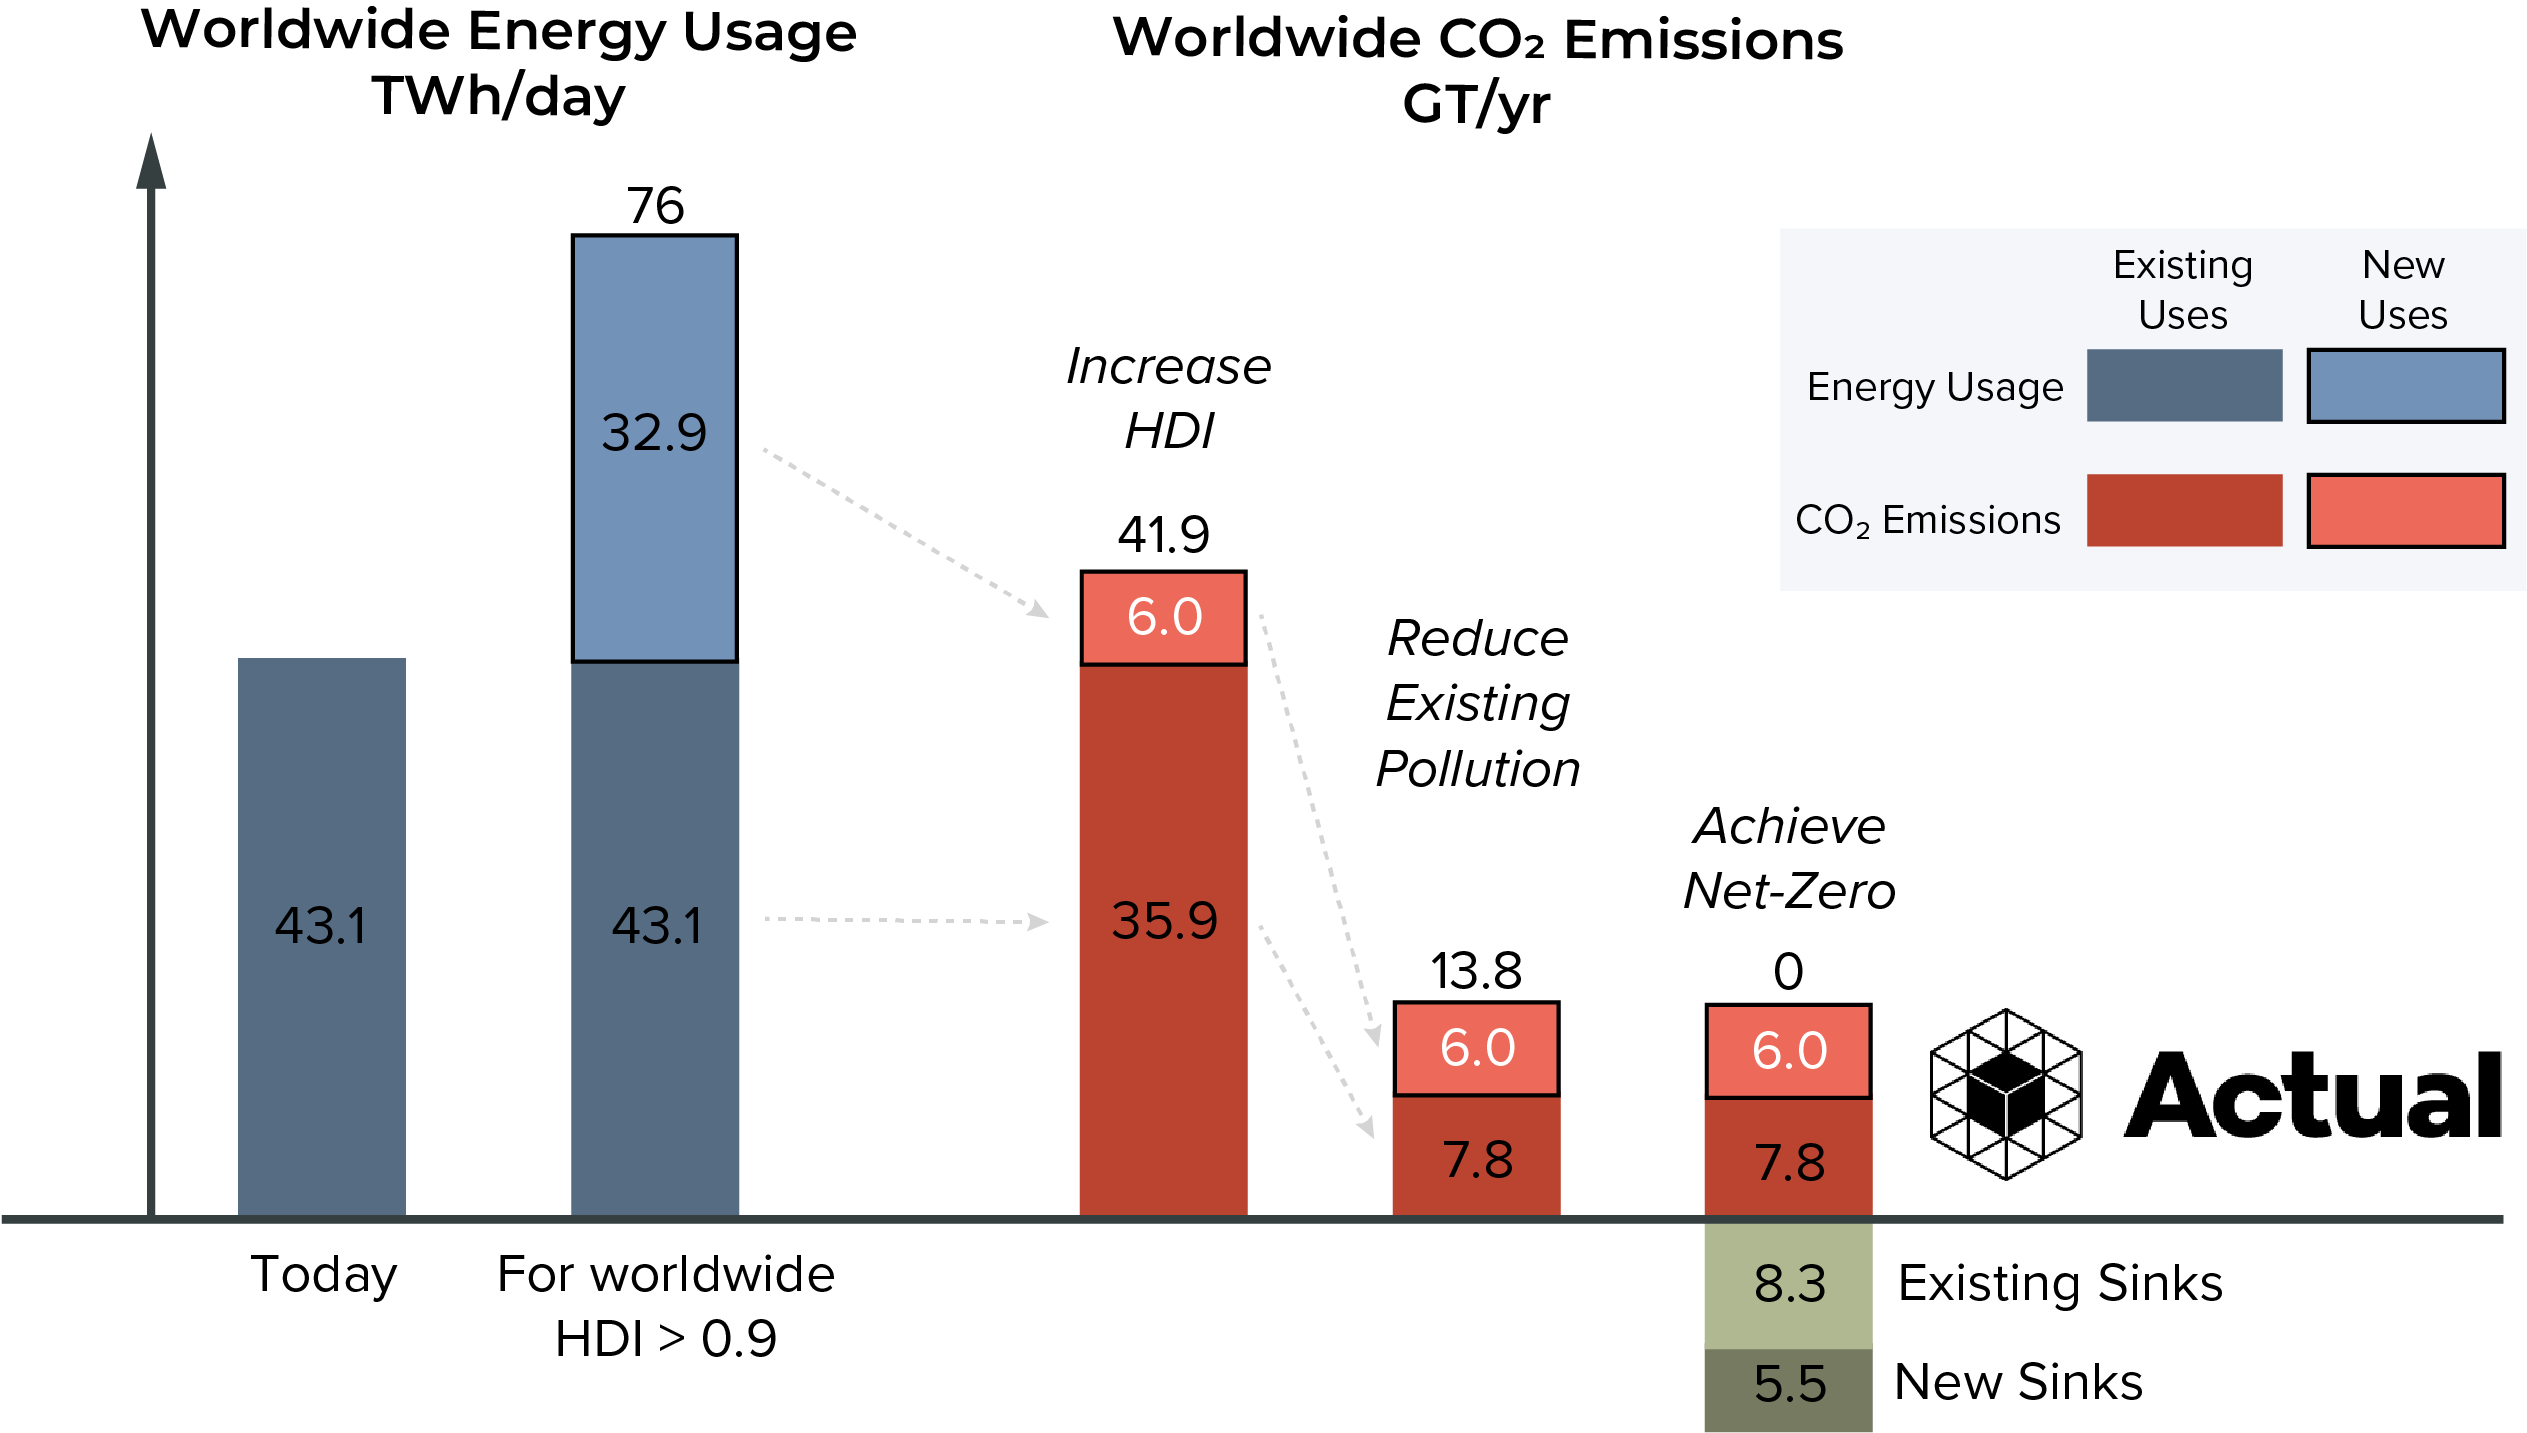 This chart shows the pathway for energy use and emissions. Starting with 43.1 TWH/day to 76 TWh/day, will increase emissions from 36 to 41 GT CO2/yr. Through reducing existing pollution and adding carbon sinks, we can achieve net zero.